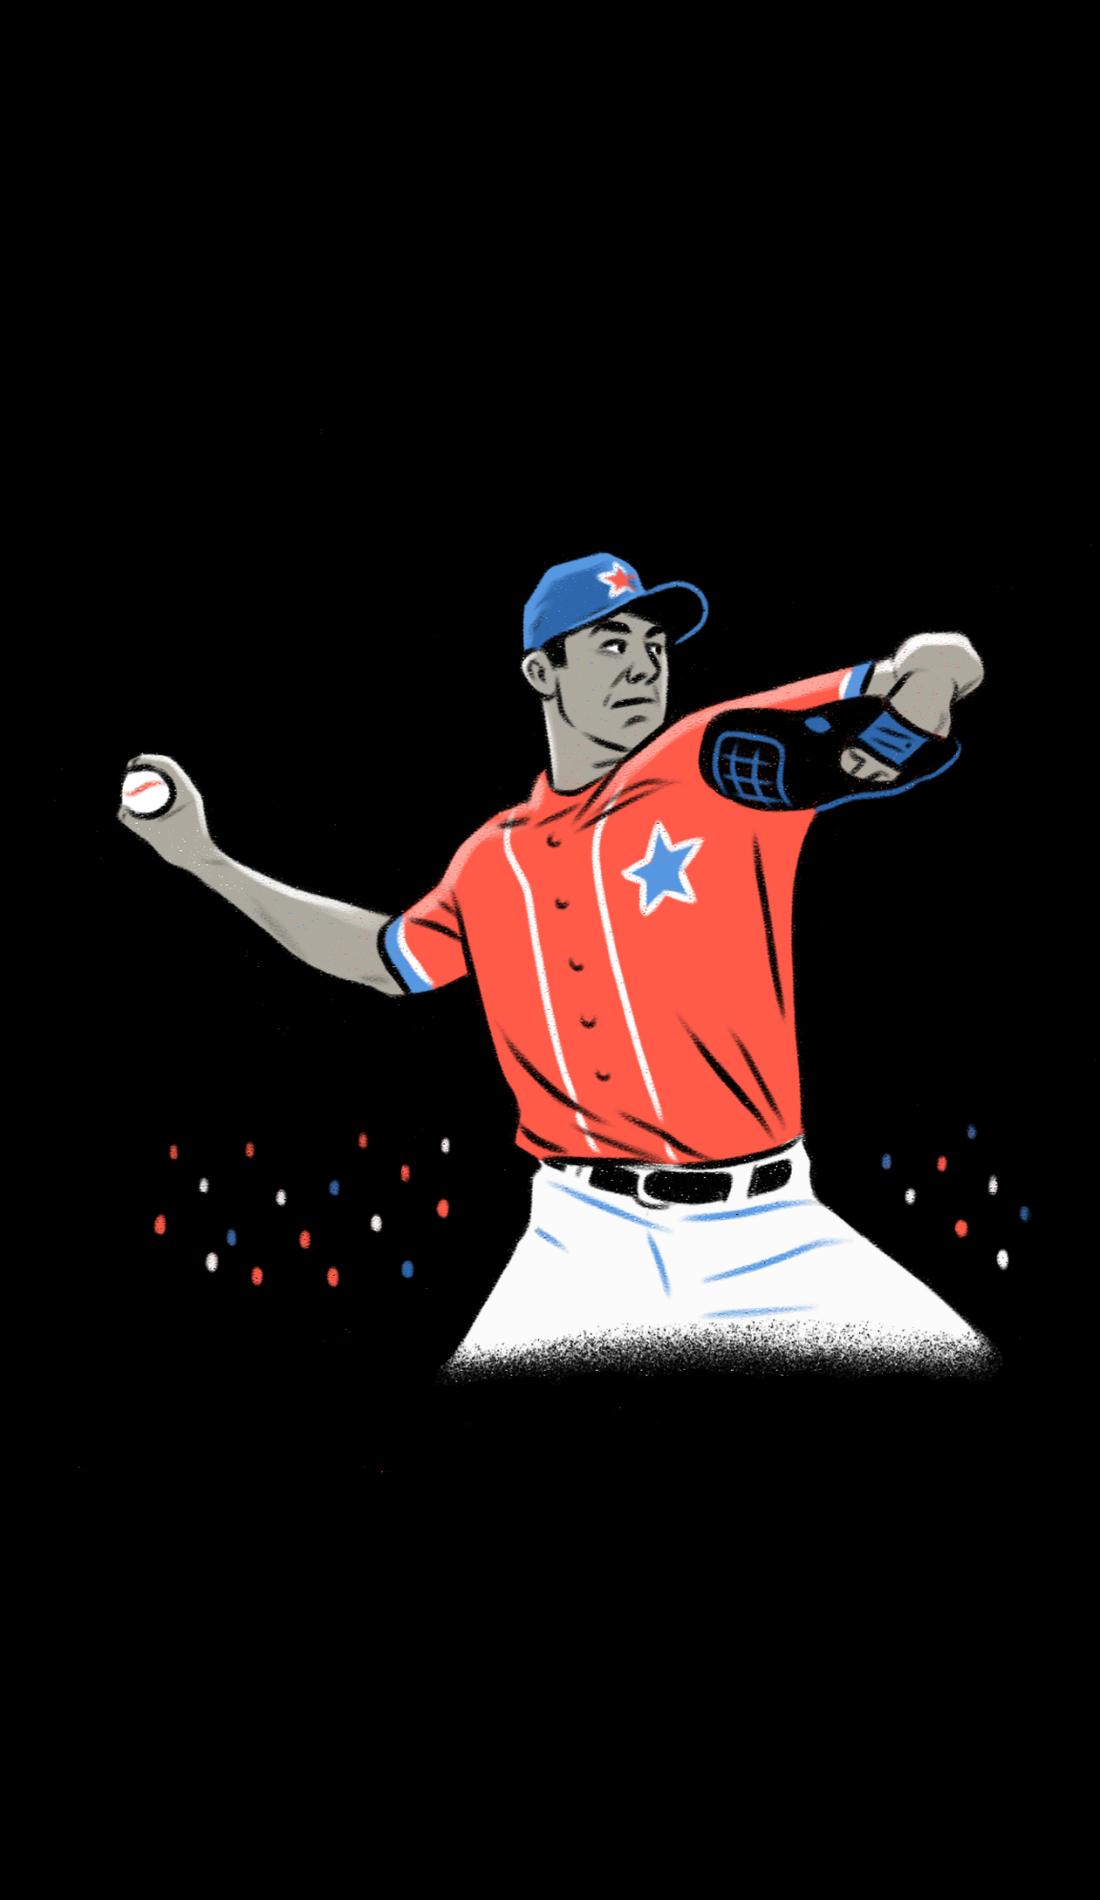 A Alabama Crimson Tide Baseball live event